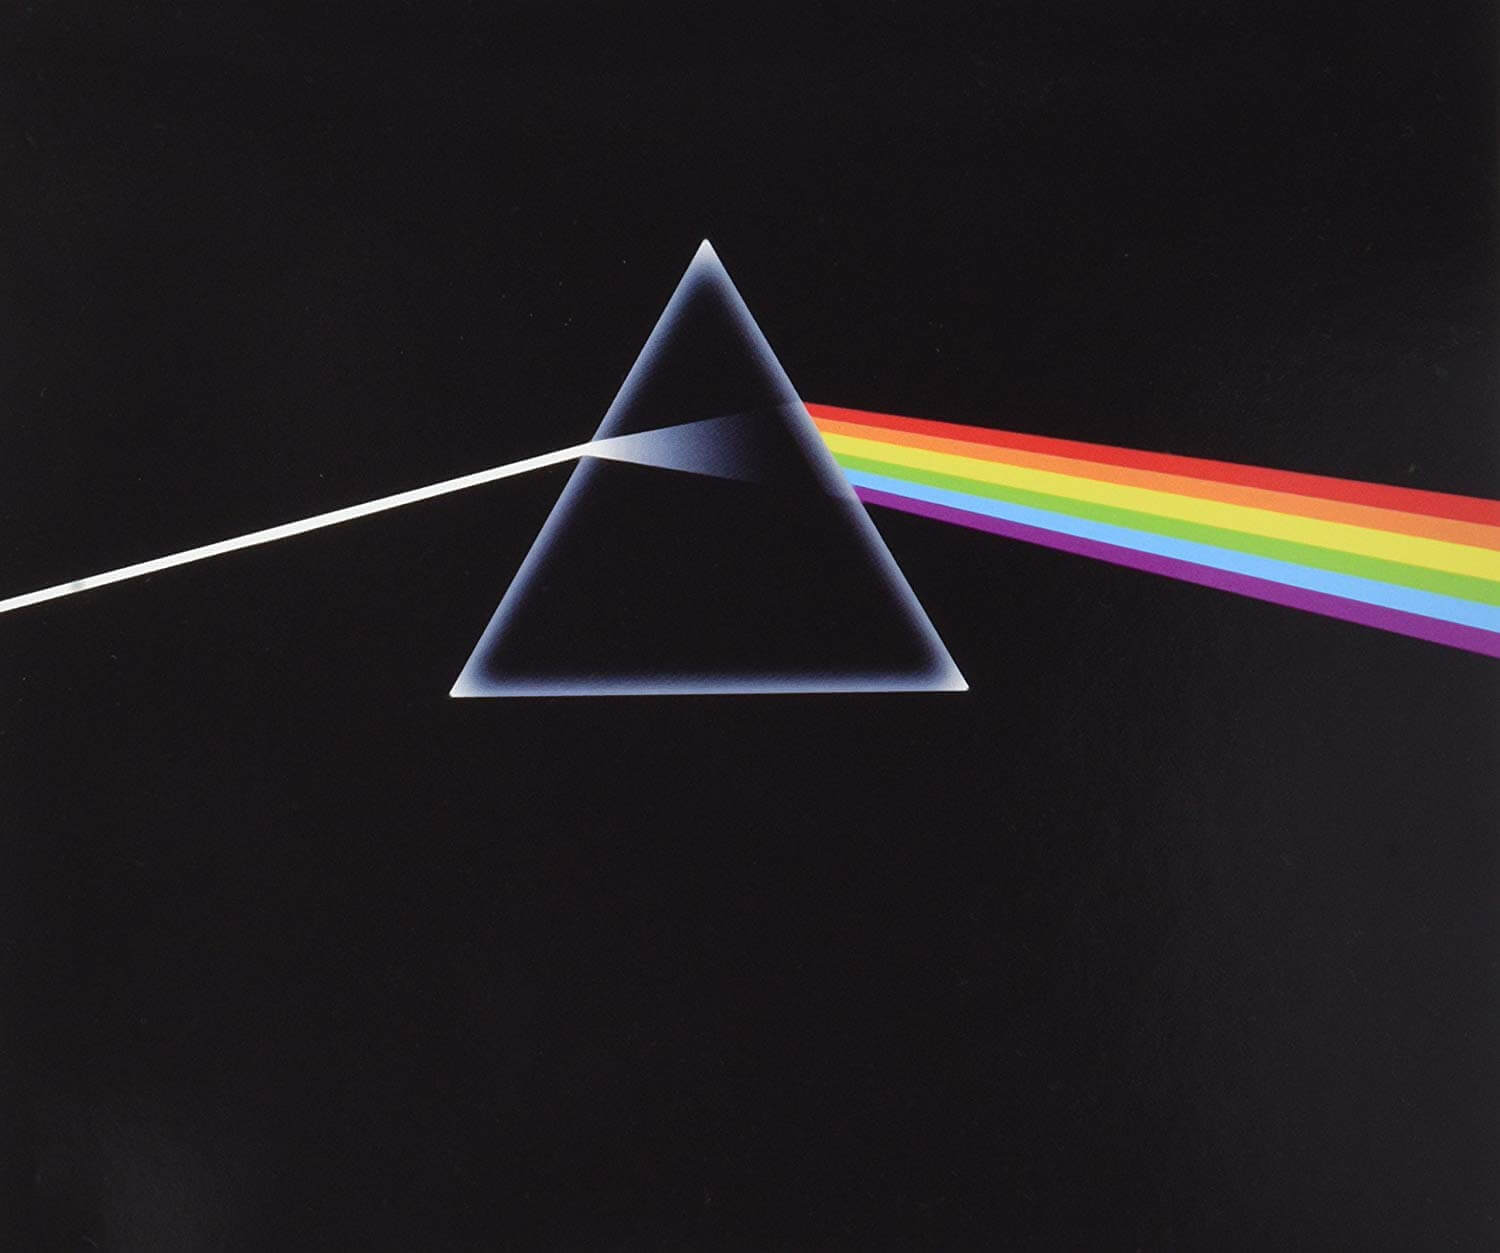 Potada del disco The Dark side of the moon de Pink Floyd